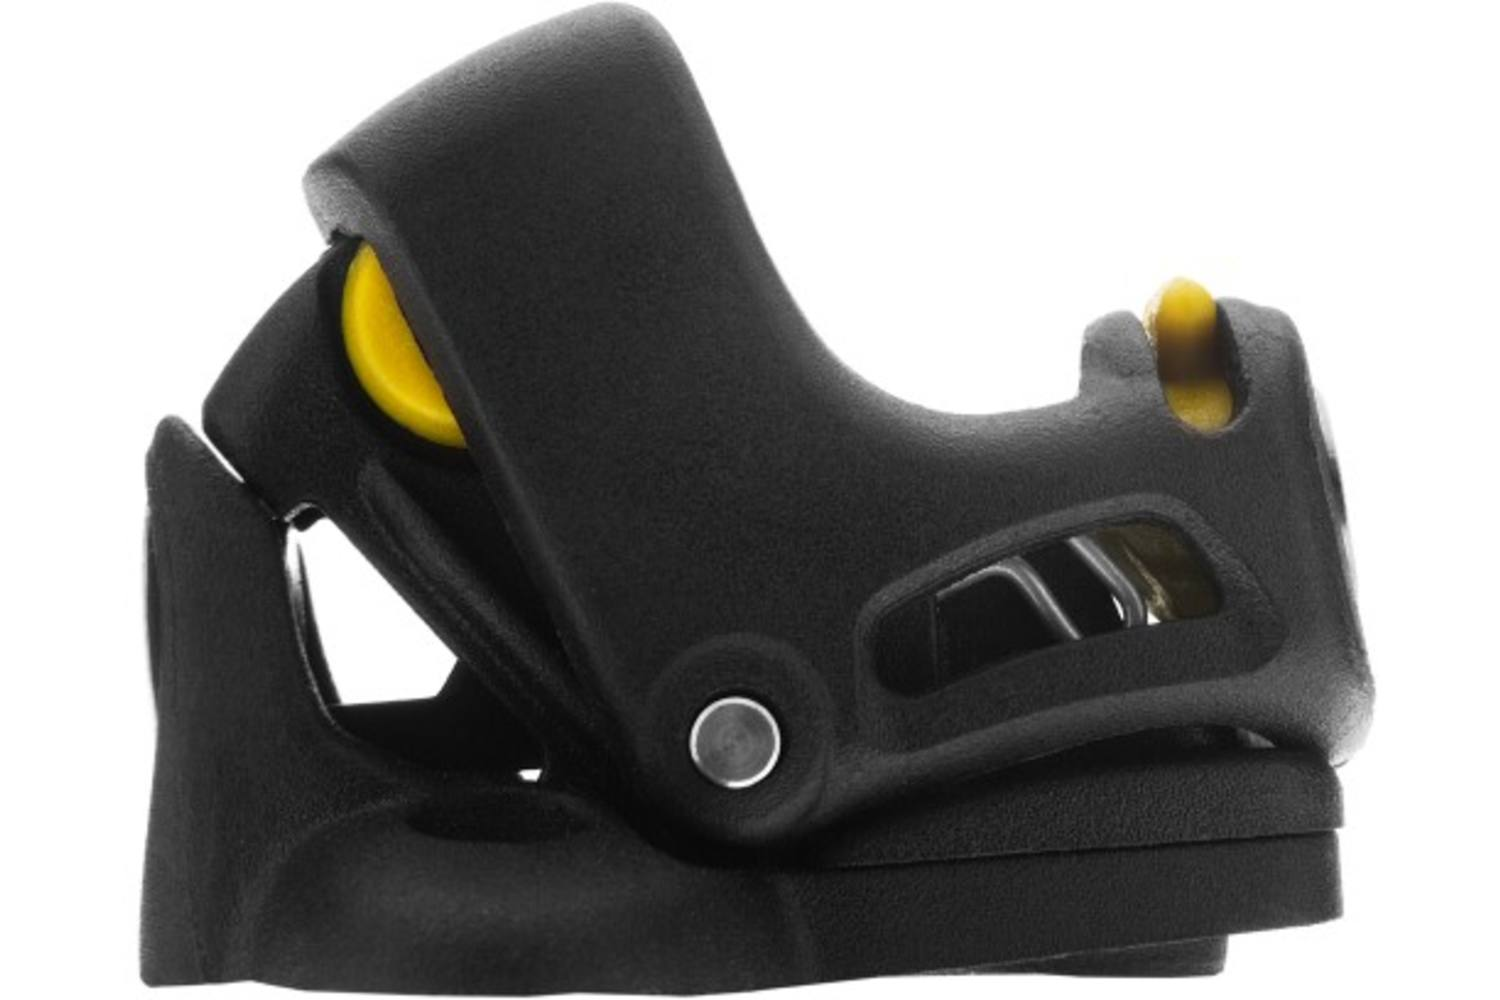 Spinlock PXR Power cleat 2-6mm PXR0206/T